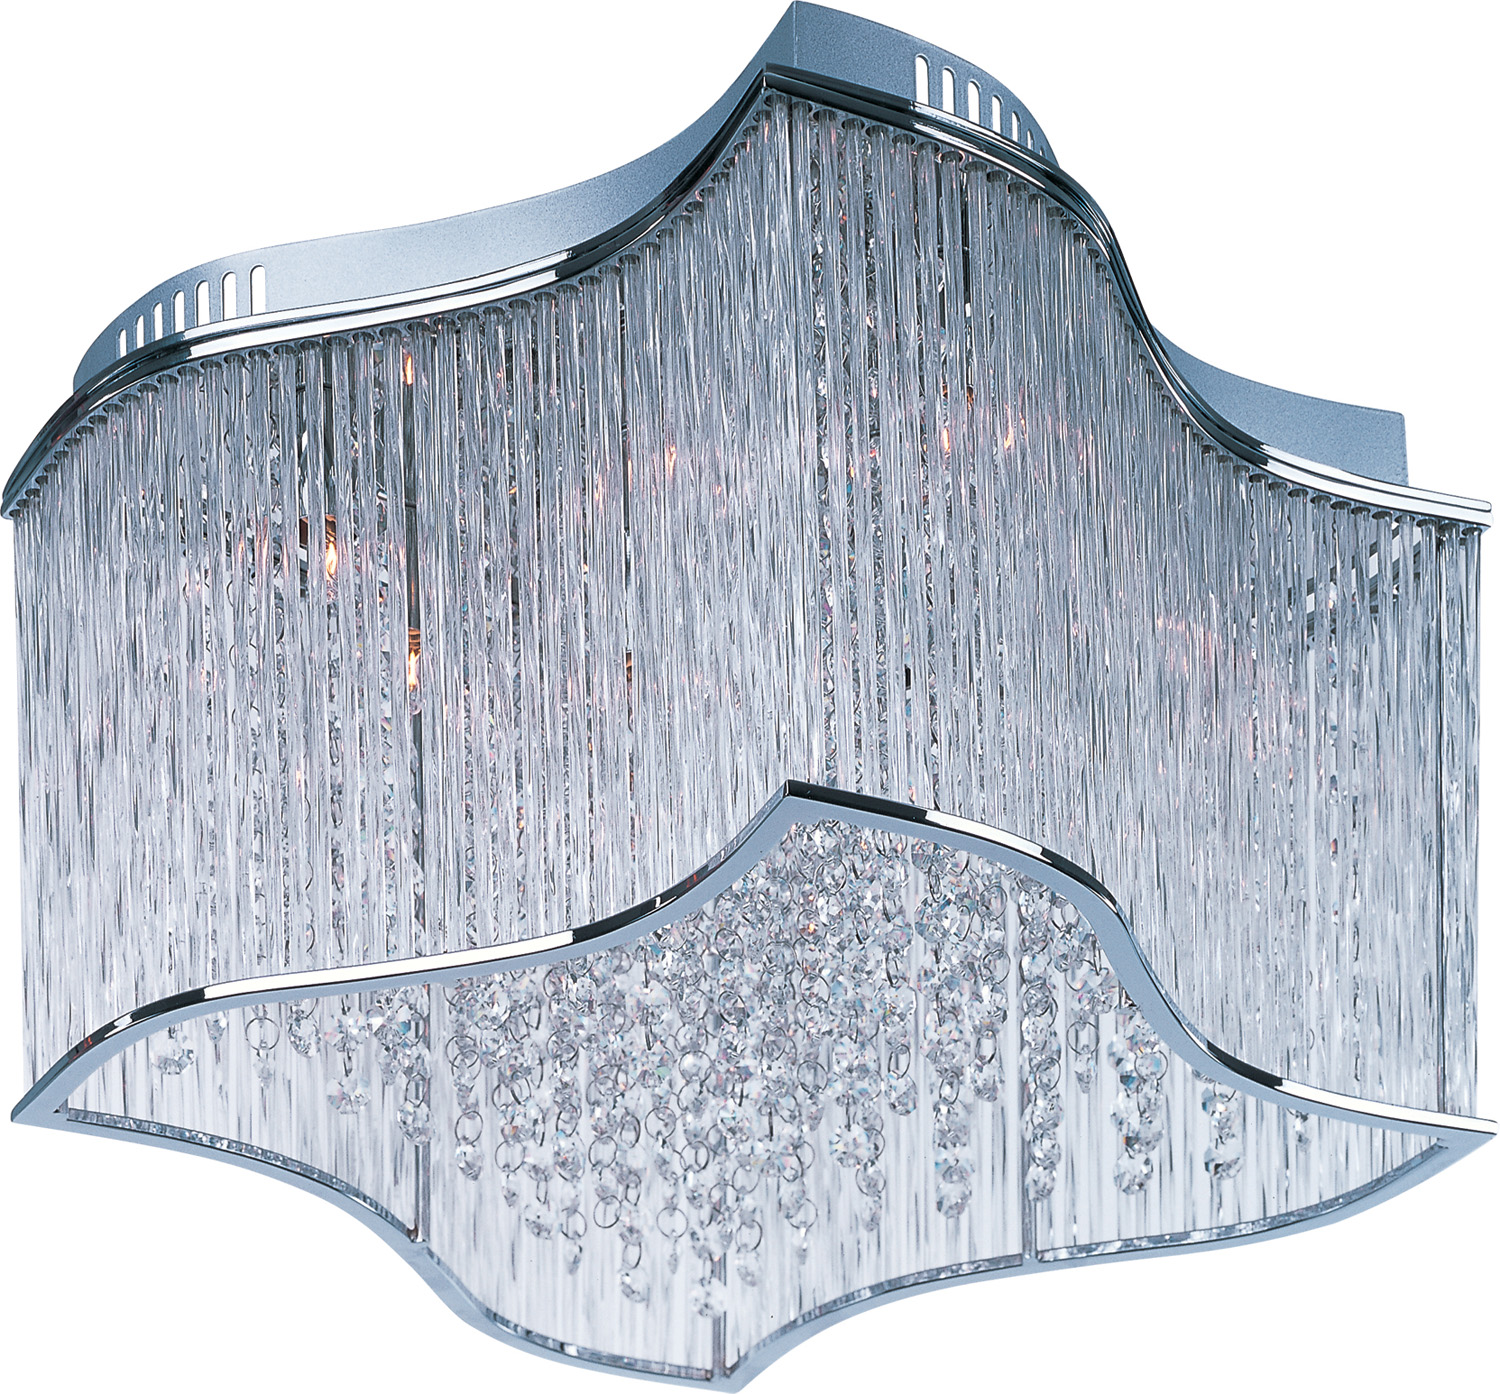 12 Light Flush Mount from the Swizzle collection by Maxim 39700CLPC